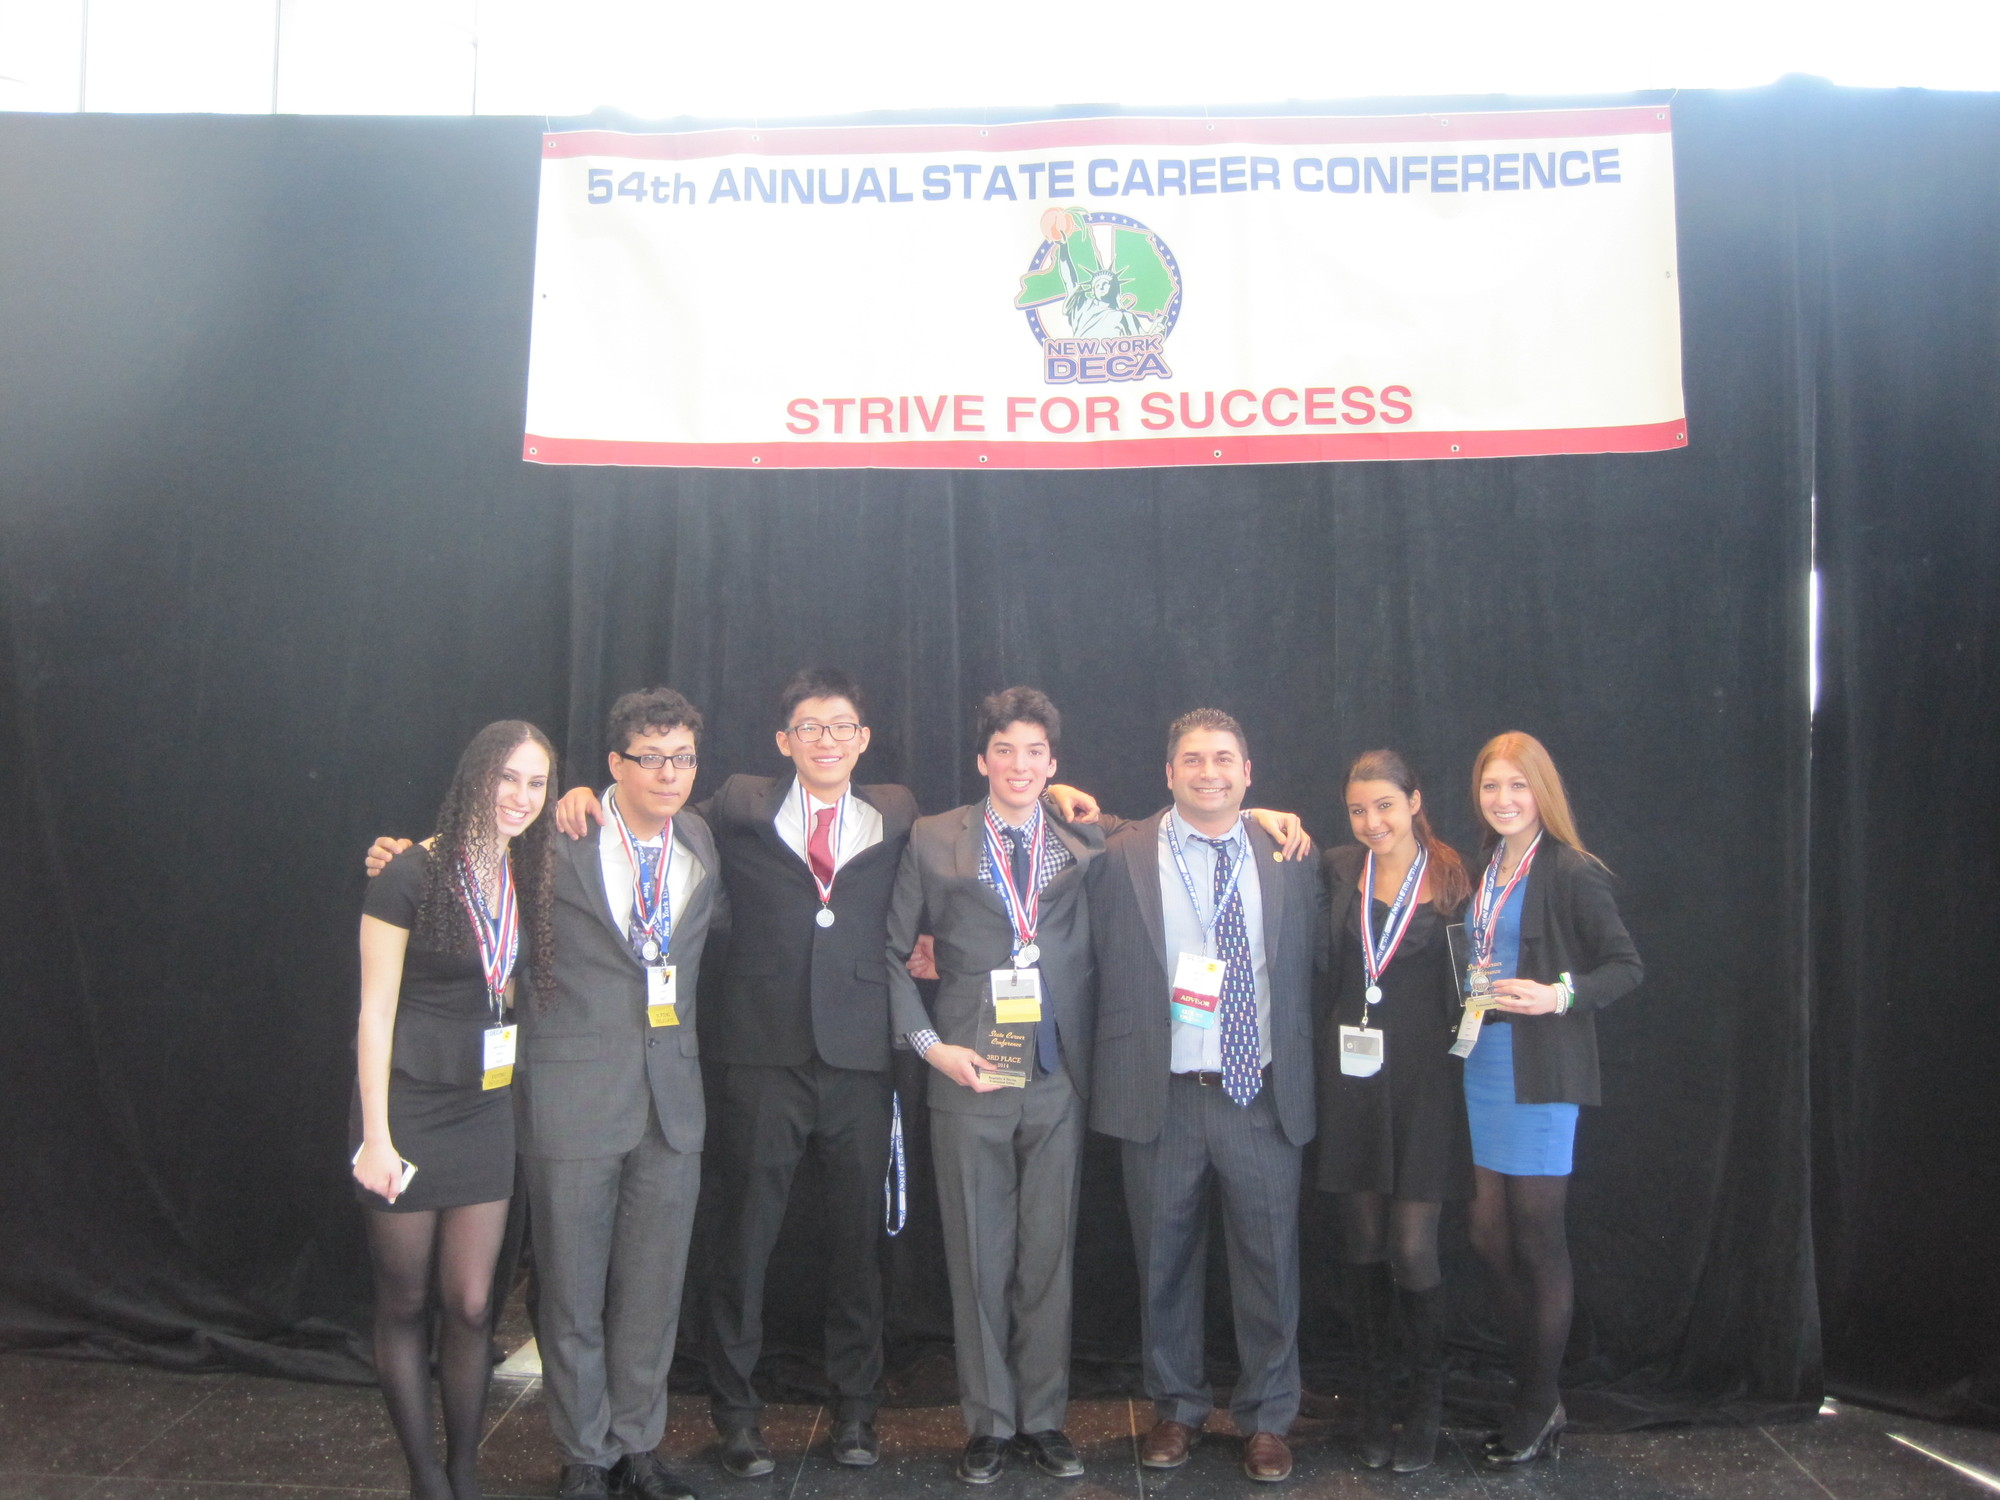 Lawrence High School students excelled at the state DECA conference. From left were students Maxine Kastriner, Thomas Lira, Ryan Bae and Jonathan Rutchik, advisor Mark Albin, and students Victoria DiCeglio and Jessica Beyer.